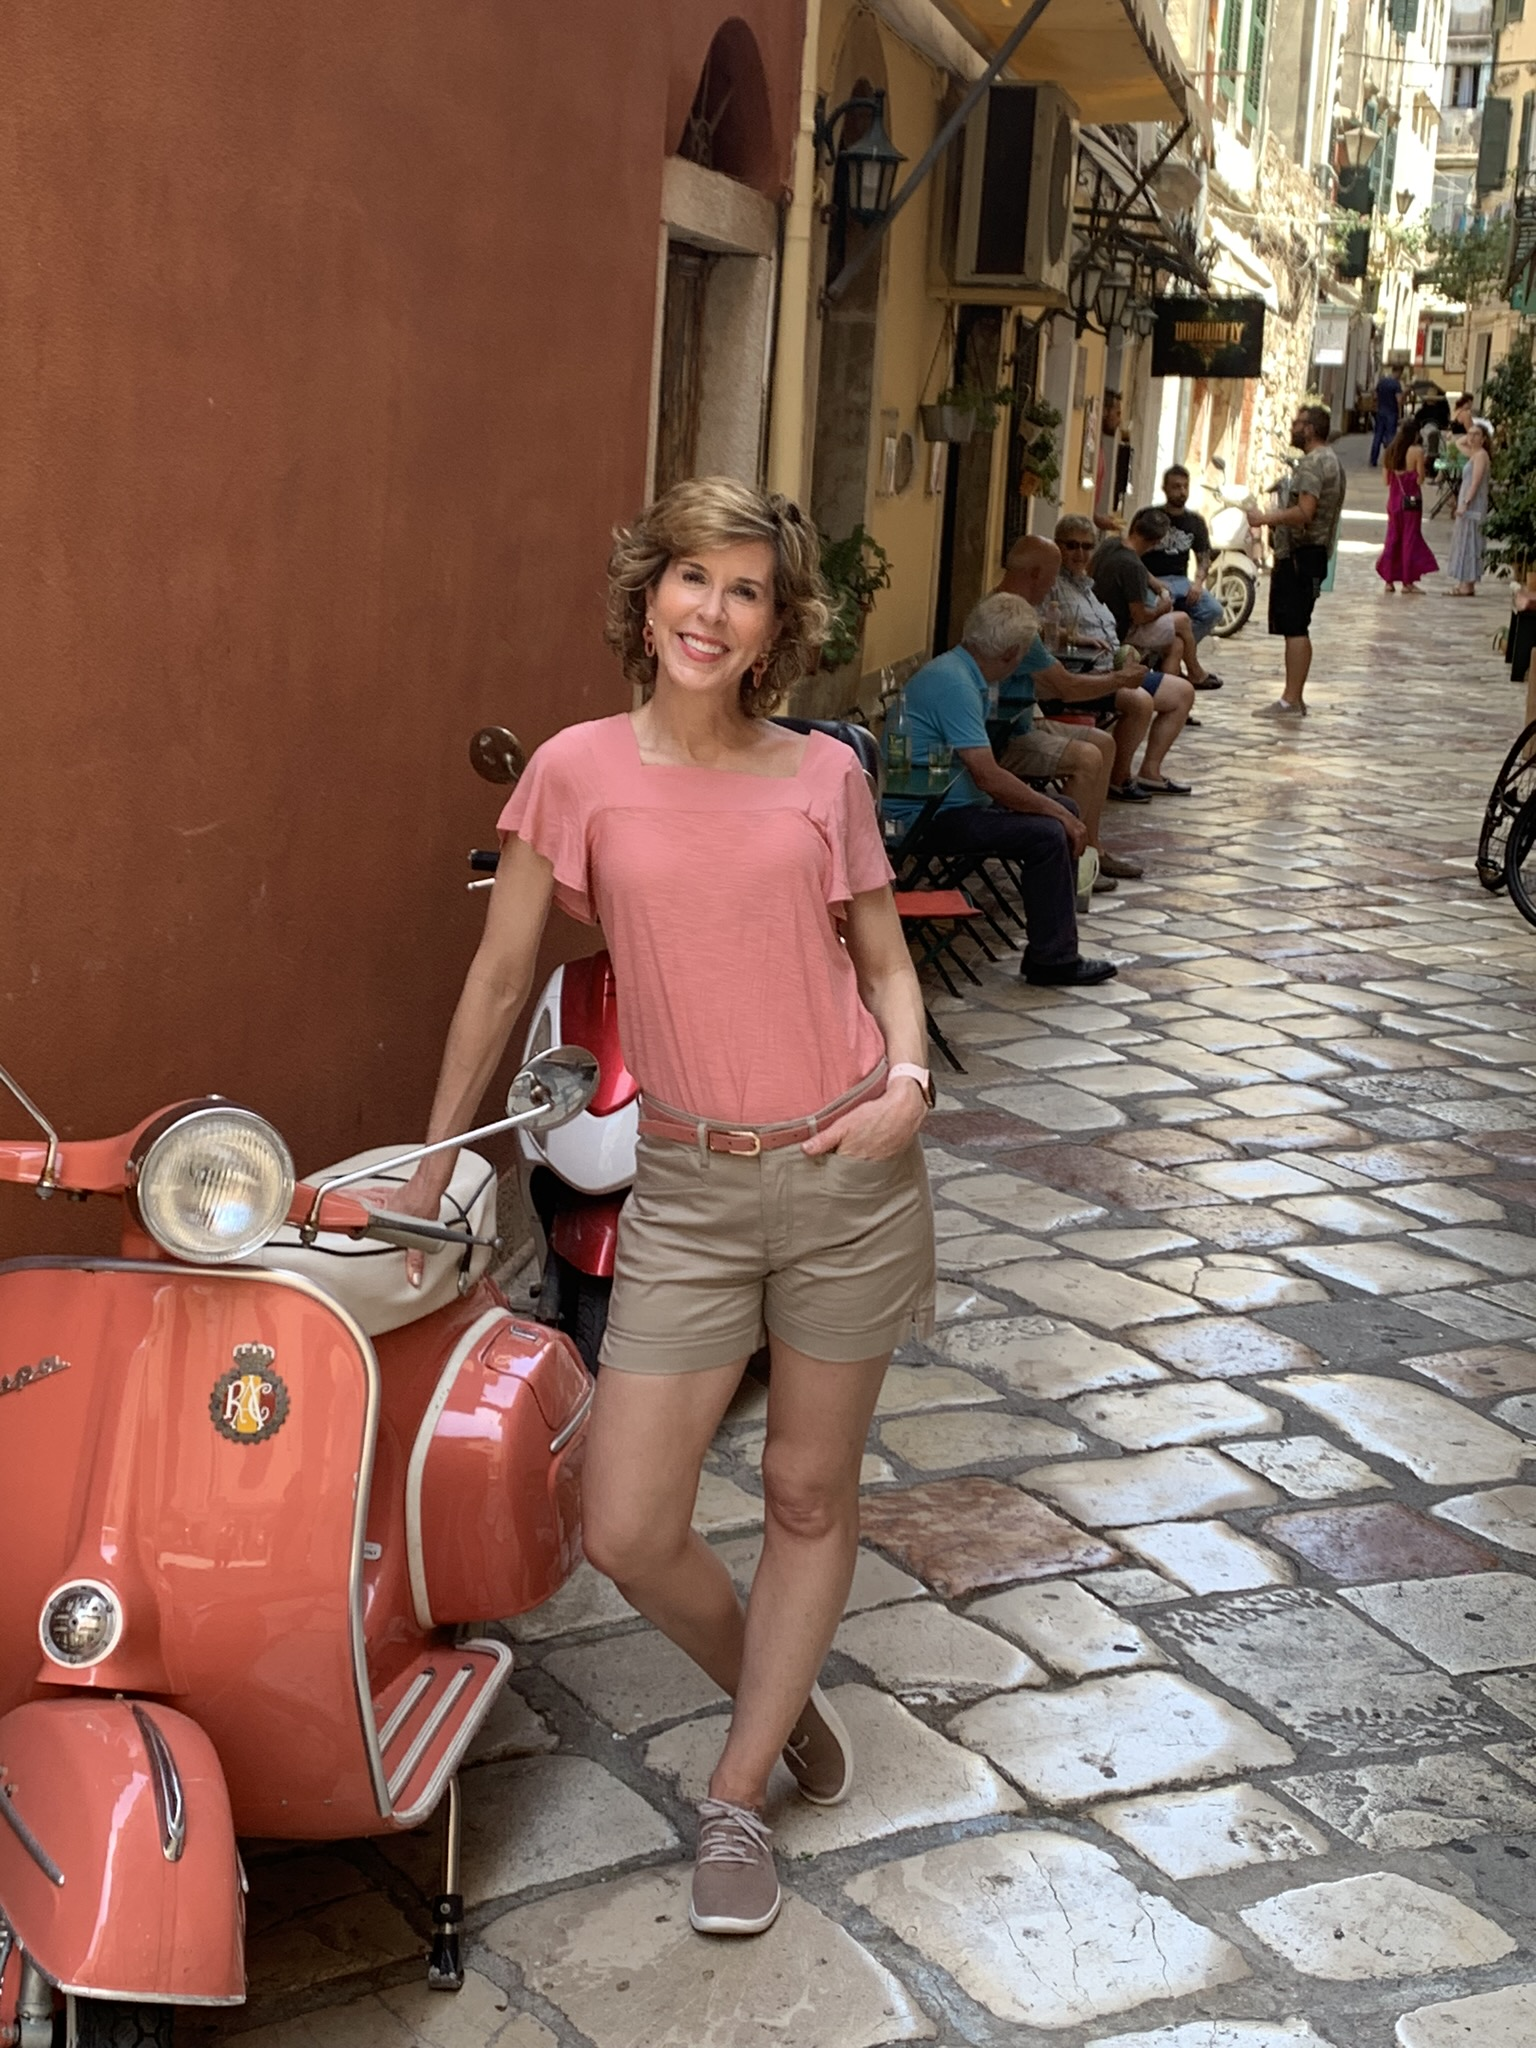 woman standing next to moped in the streets of dubrovnick